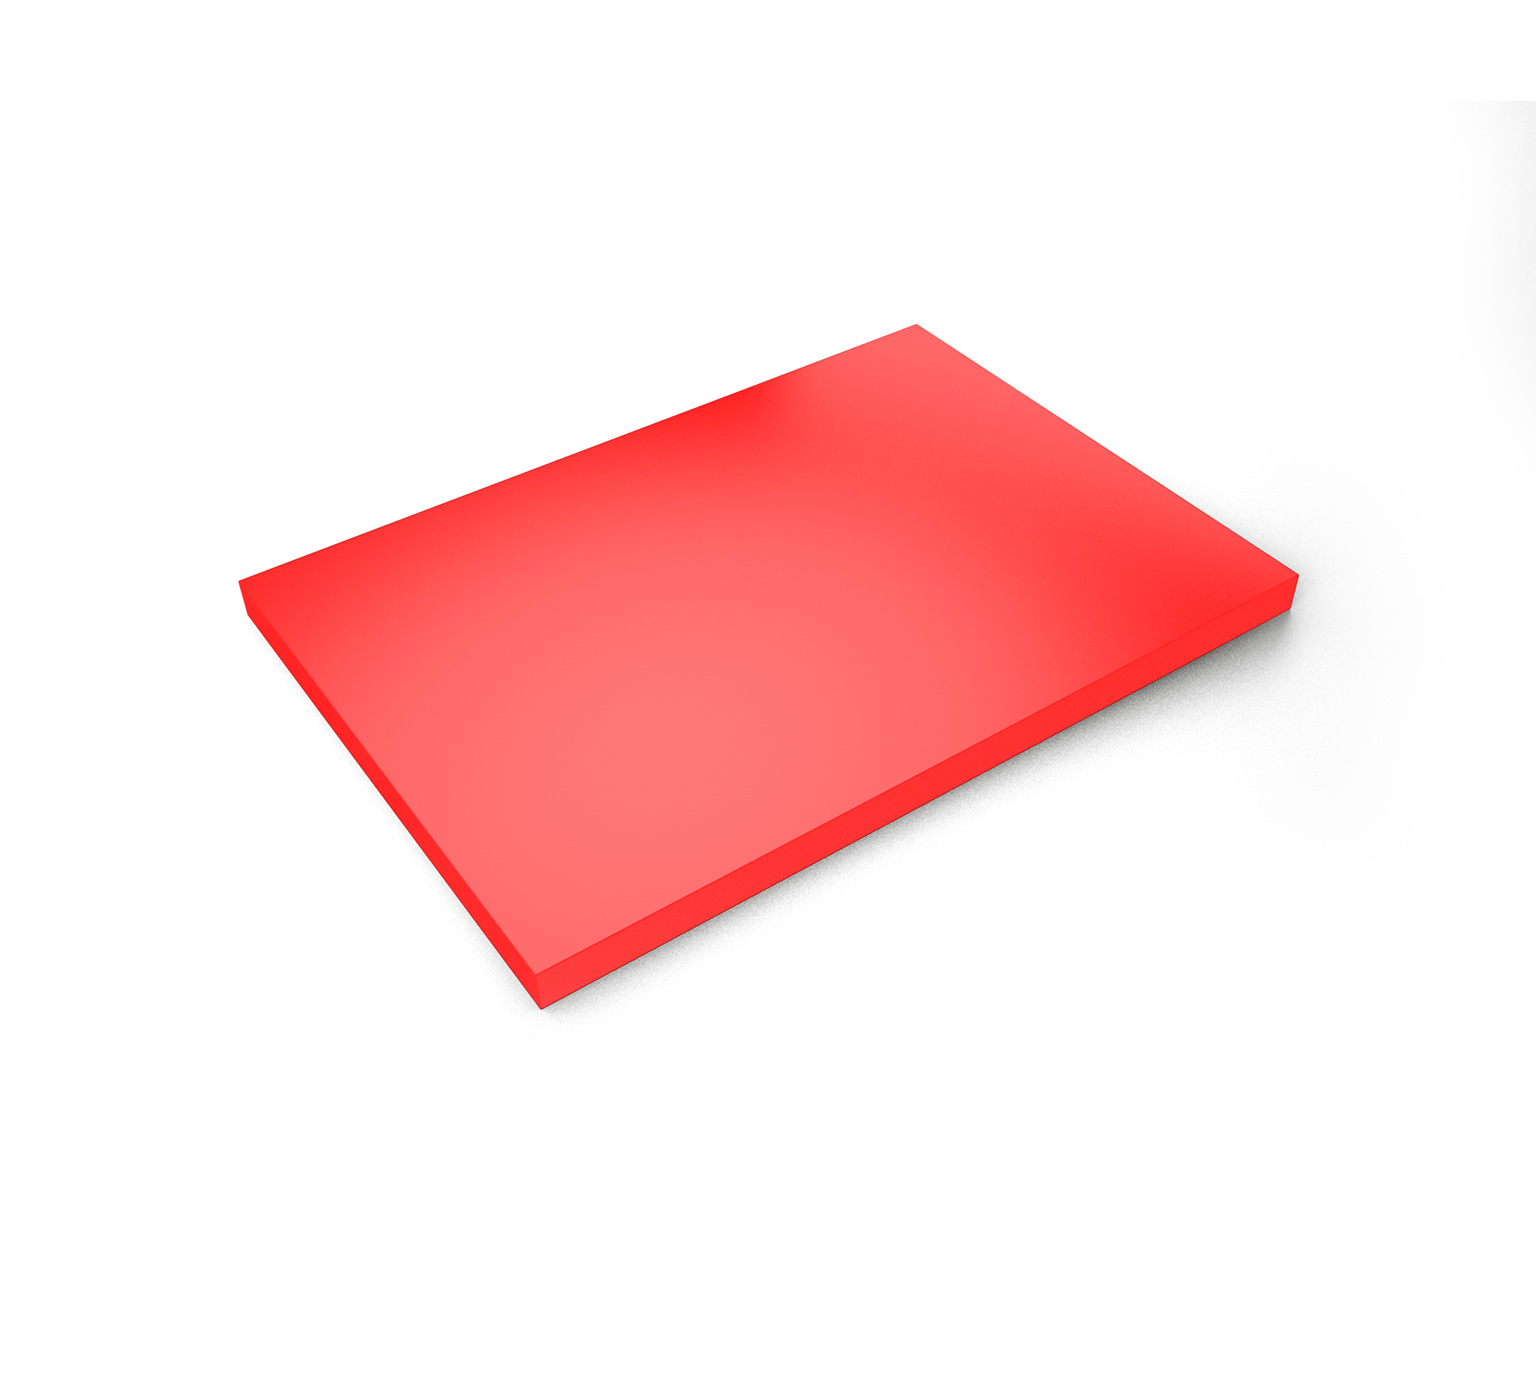 1205513 3M Red Buffing Pad – 20 x 14 in / 508 x 356 mm alt 1